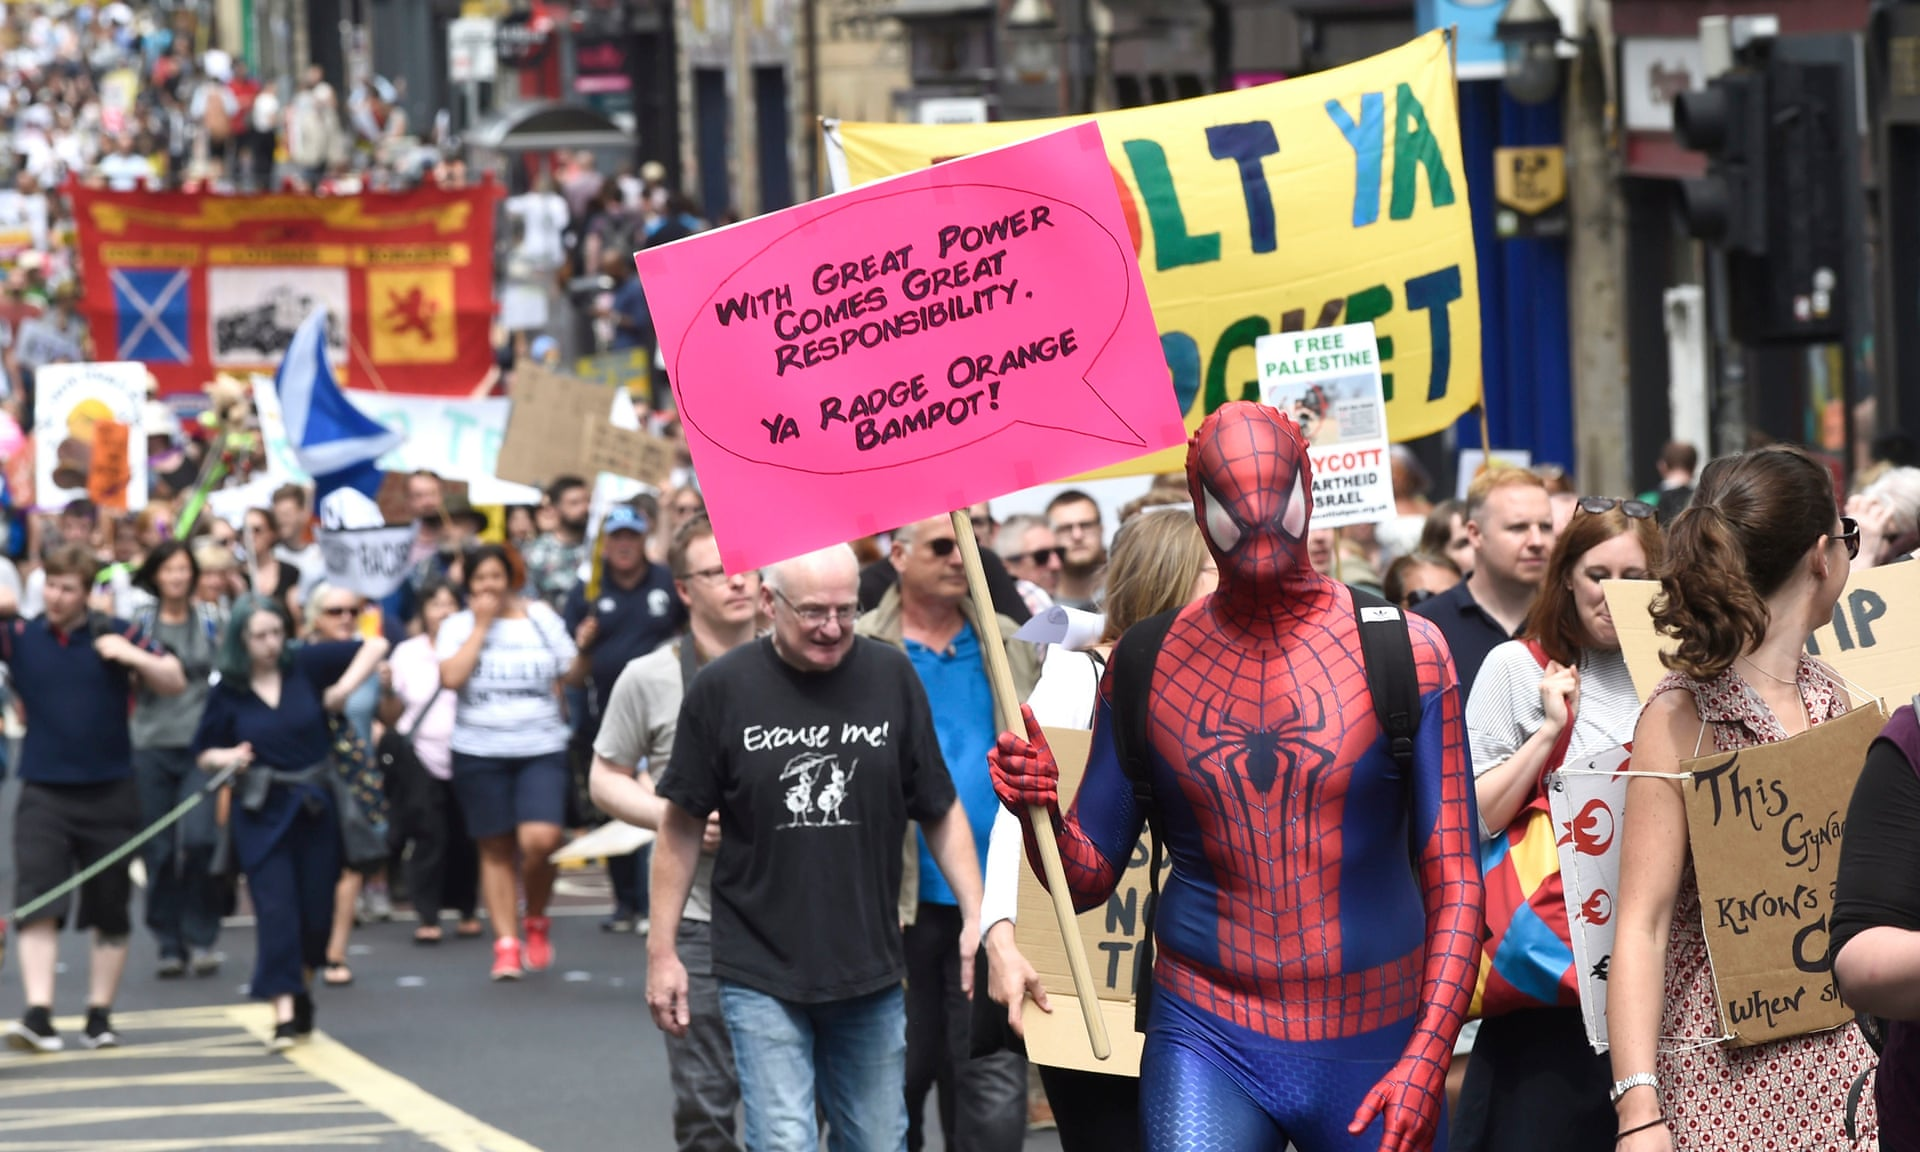 Scottish Spider-Man makes his point as thousands march in Edinburgh against Donald Trump's visit. — Photograph: Lesley Martin/Press Association.